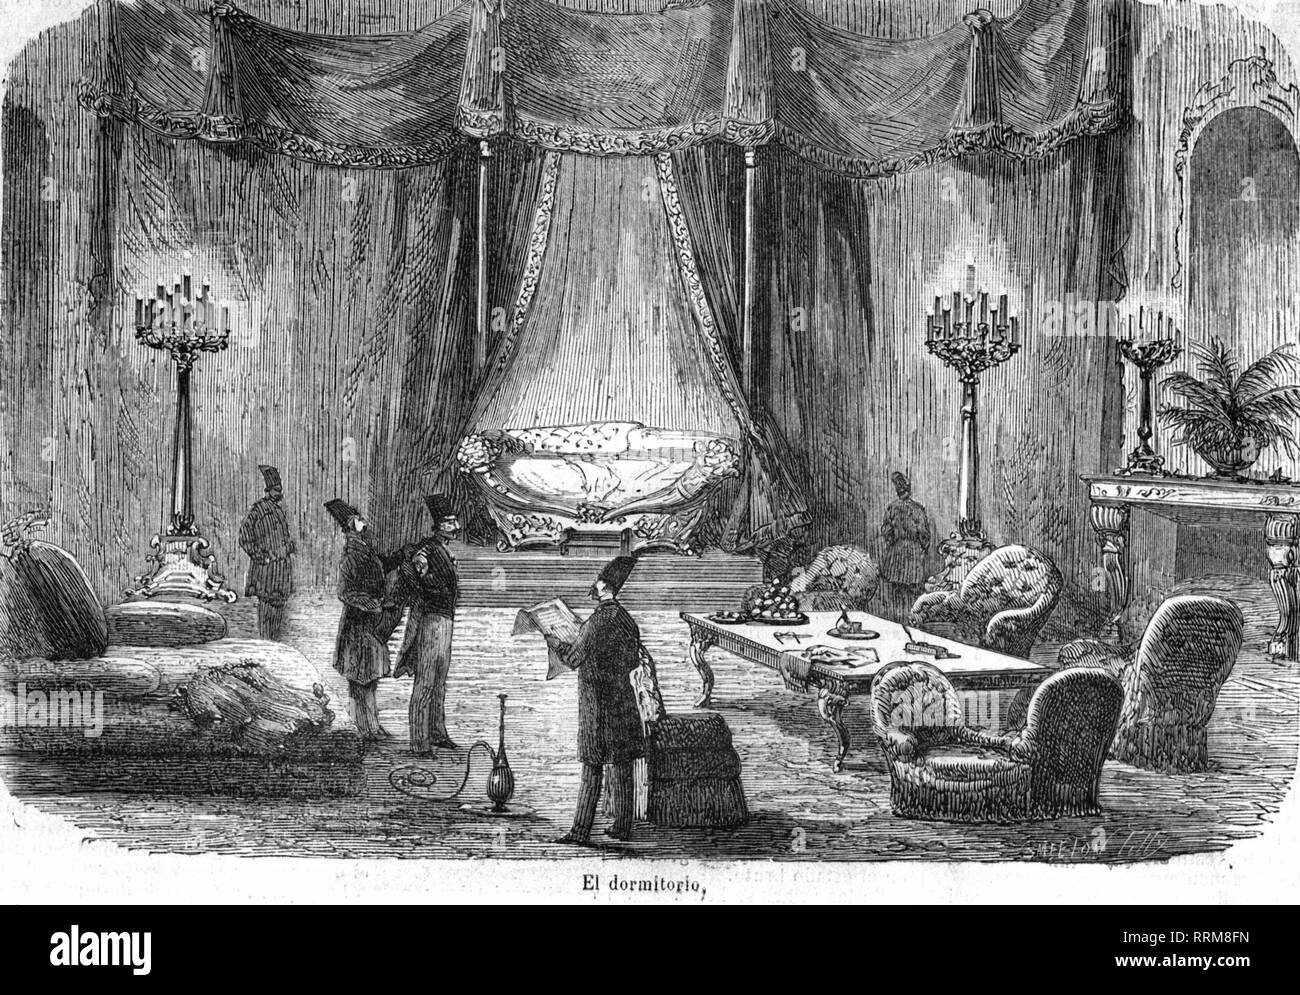 Nasser-al-Din Shah, 16.7.1831 - 1.5.1896, Shah of Persia 1848 - 1896, his palace, interior view, bedroom, wood engraving, 1873, Additional-Rights-Clearance-Info-Not-Available - Stock Image